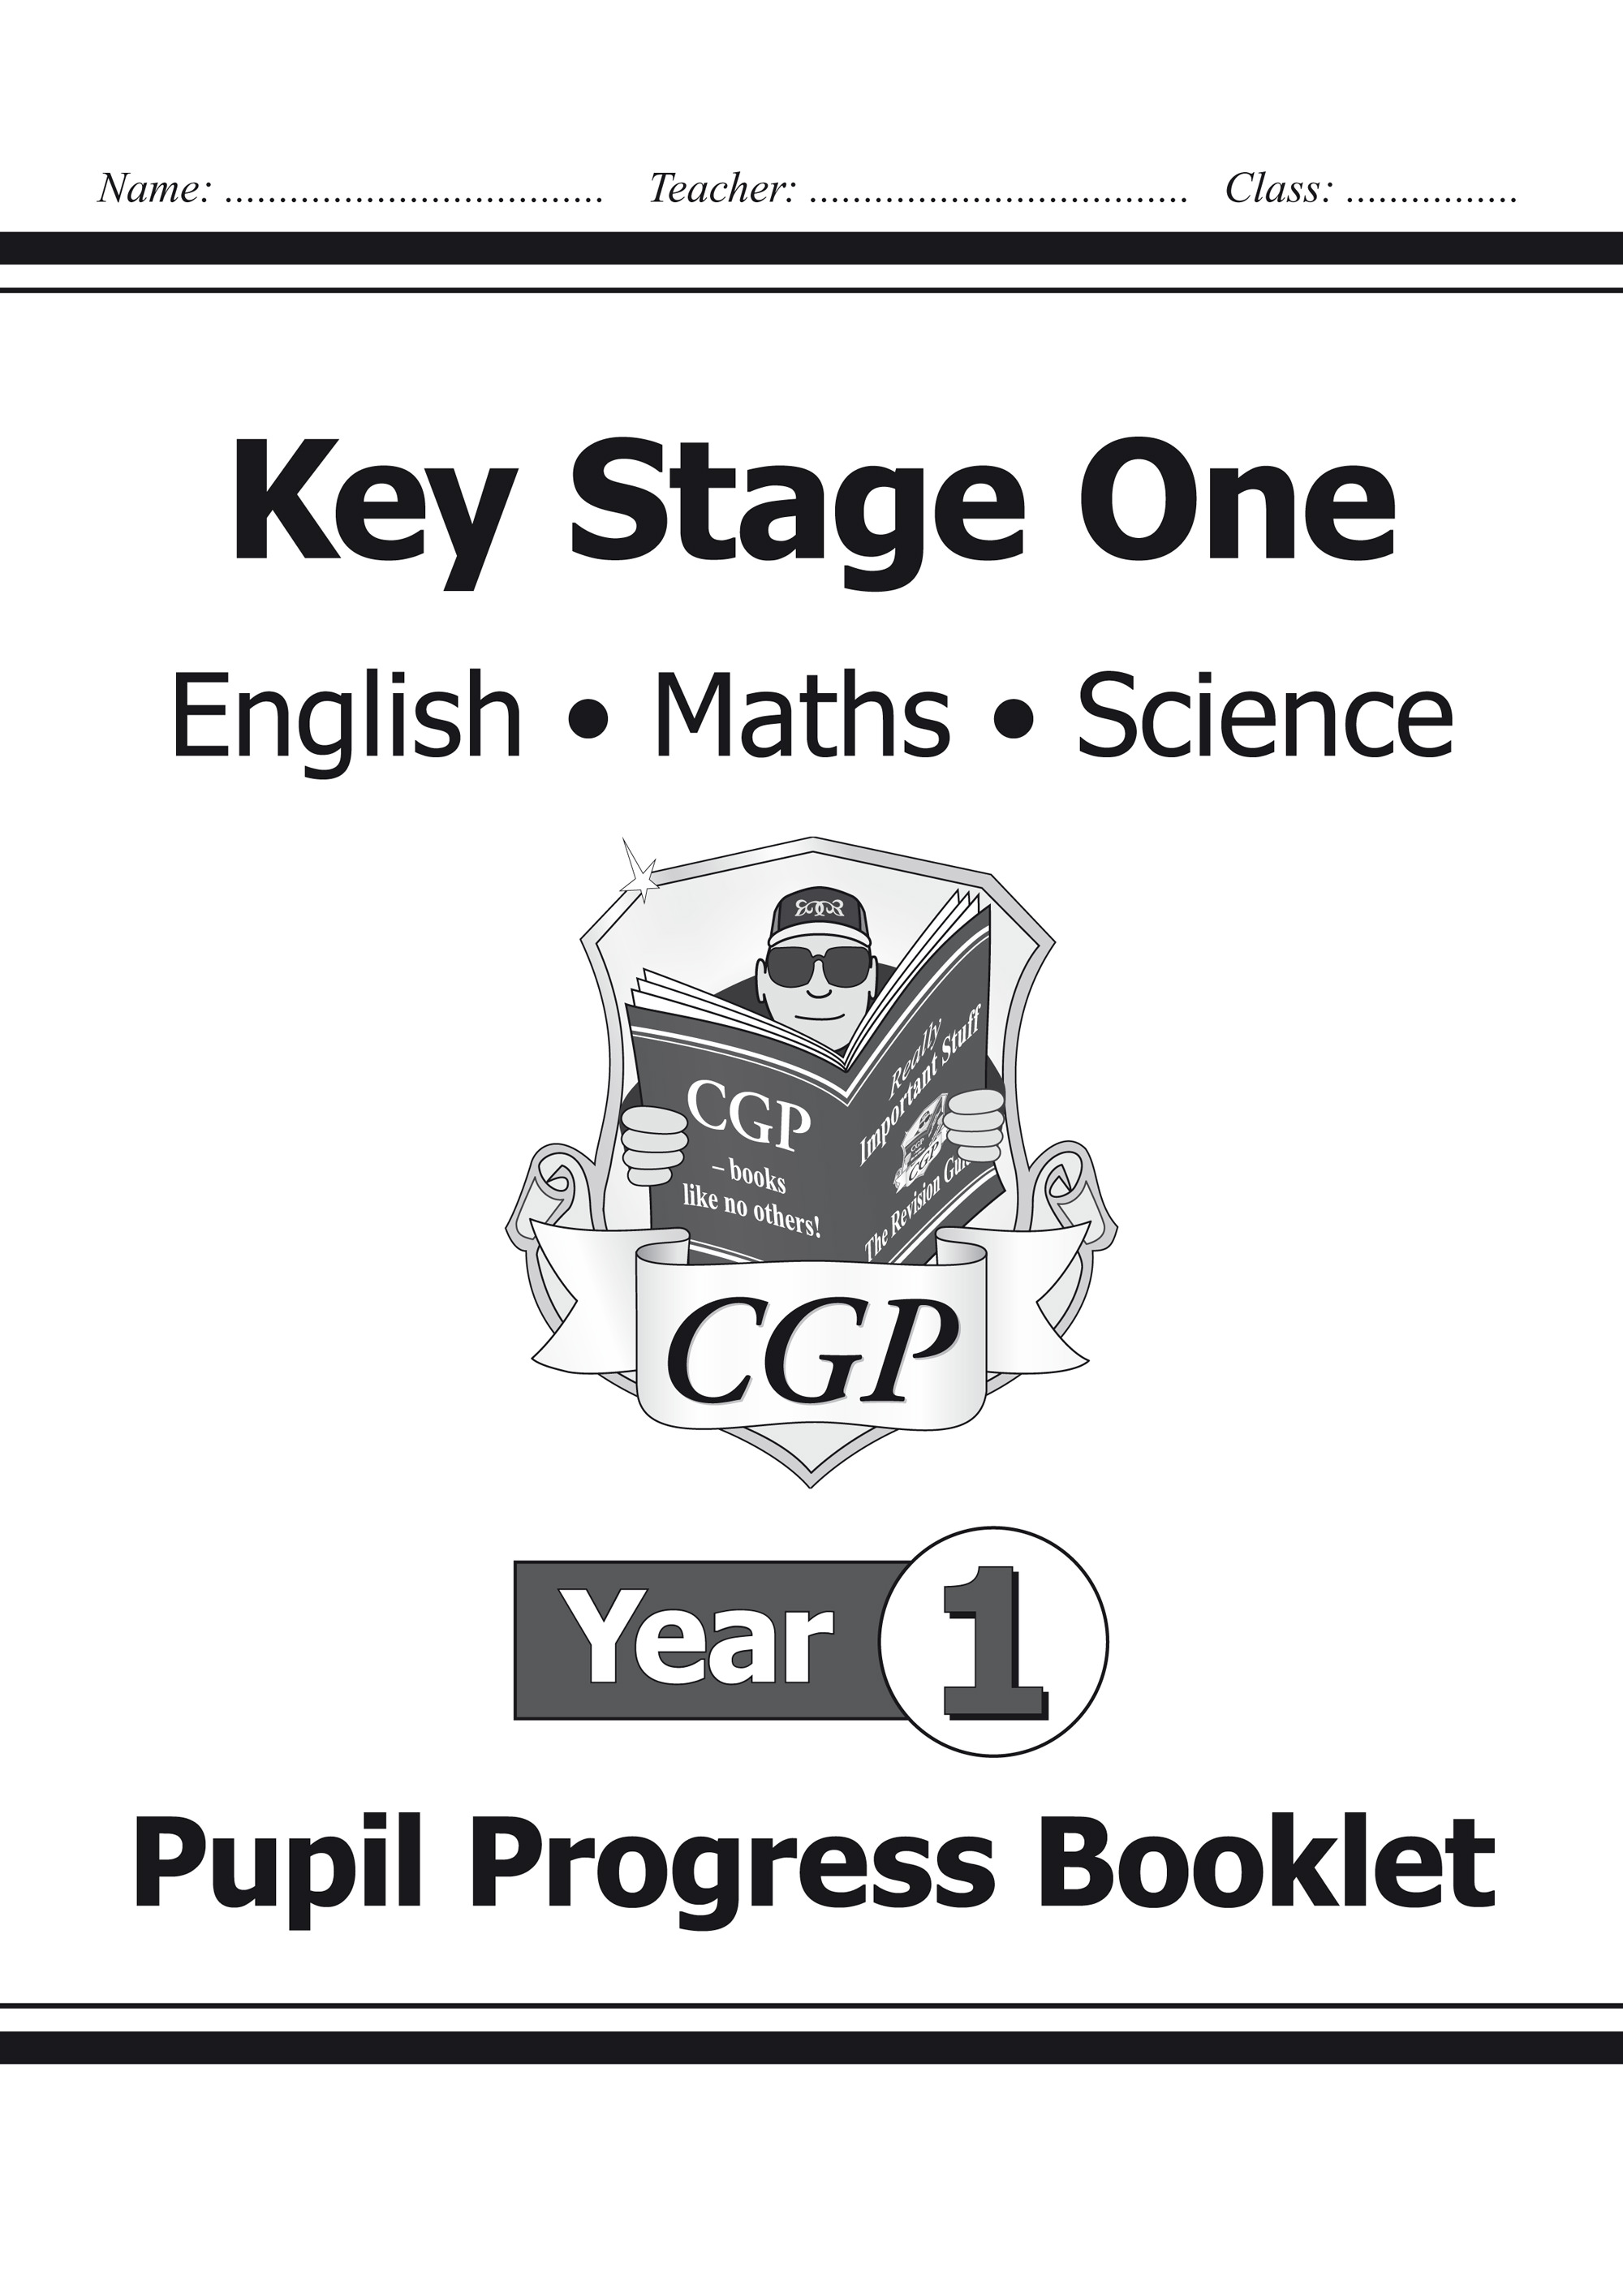 KS1 Pupil Progress Booklet for English, Maths and Science